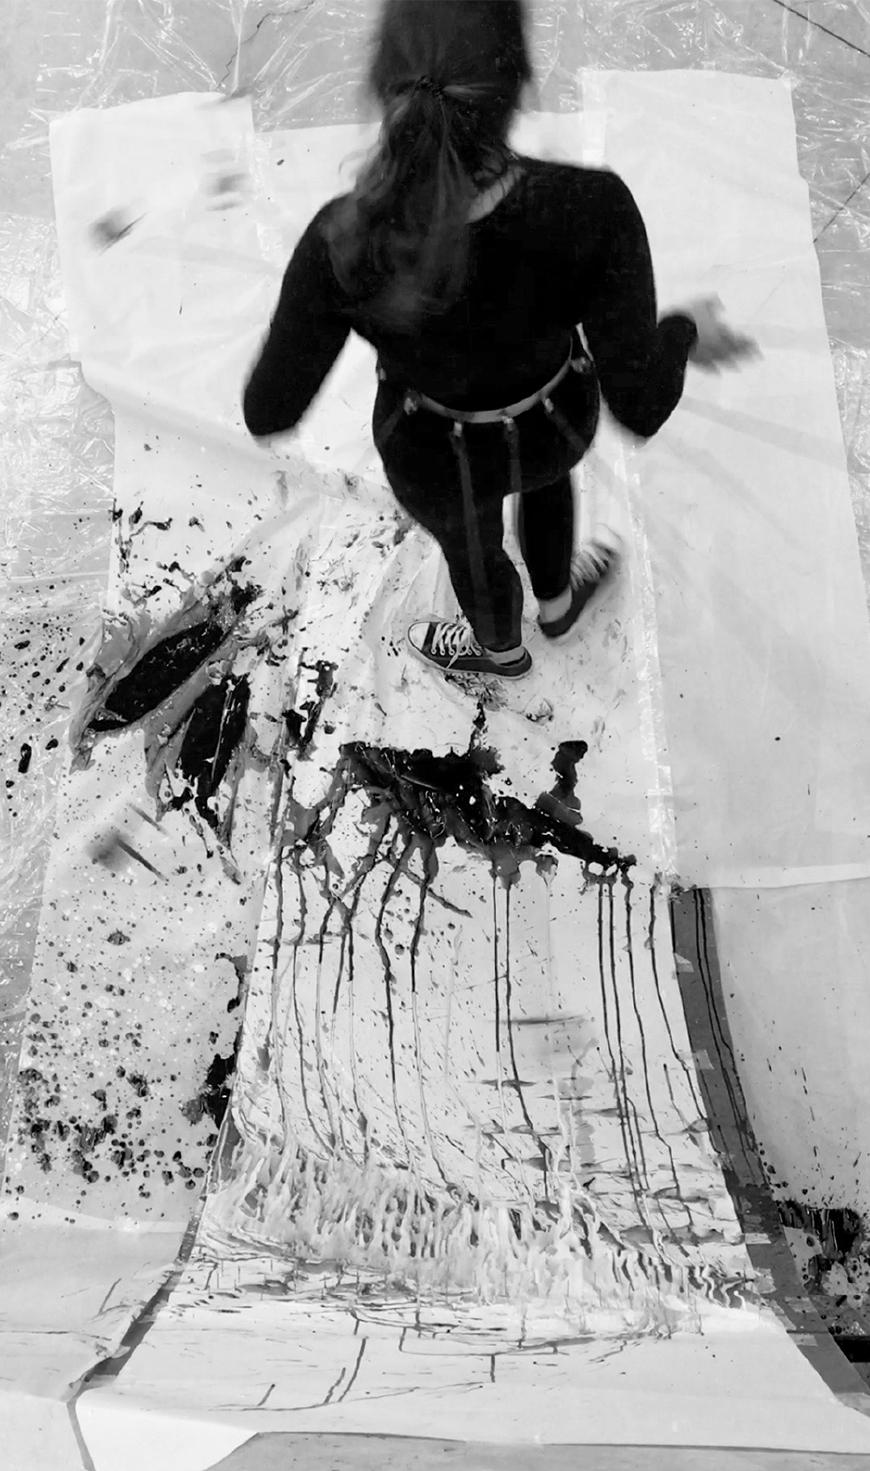 Black and white photograph of drawing machine being operated by a person, seen from above as gravity has made its effect o the ink and the drawing is nearly finalized.